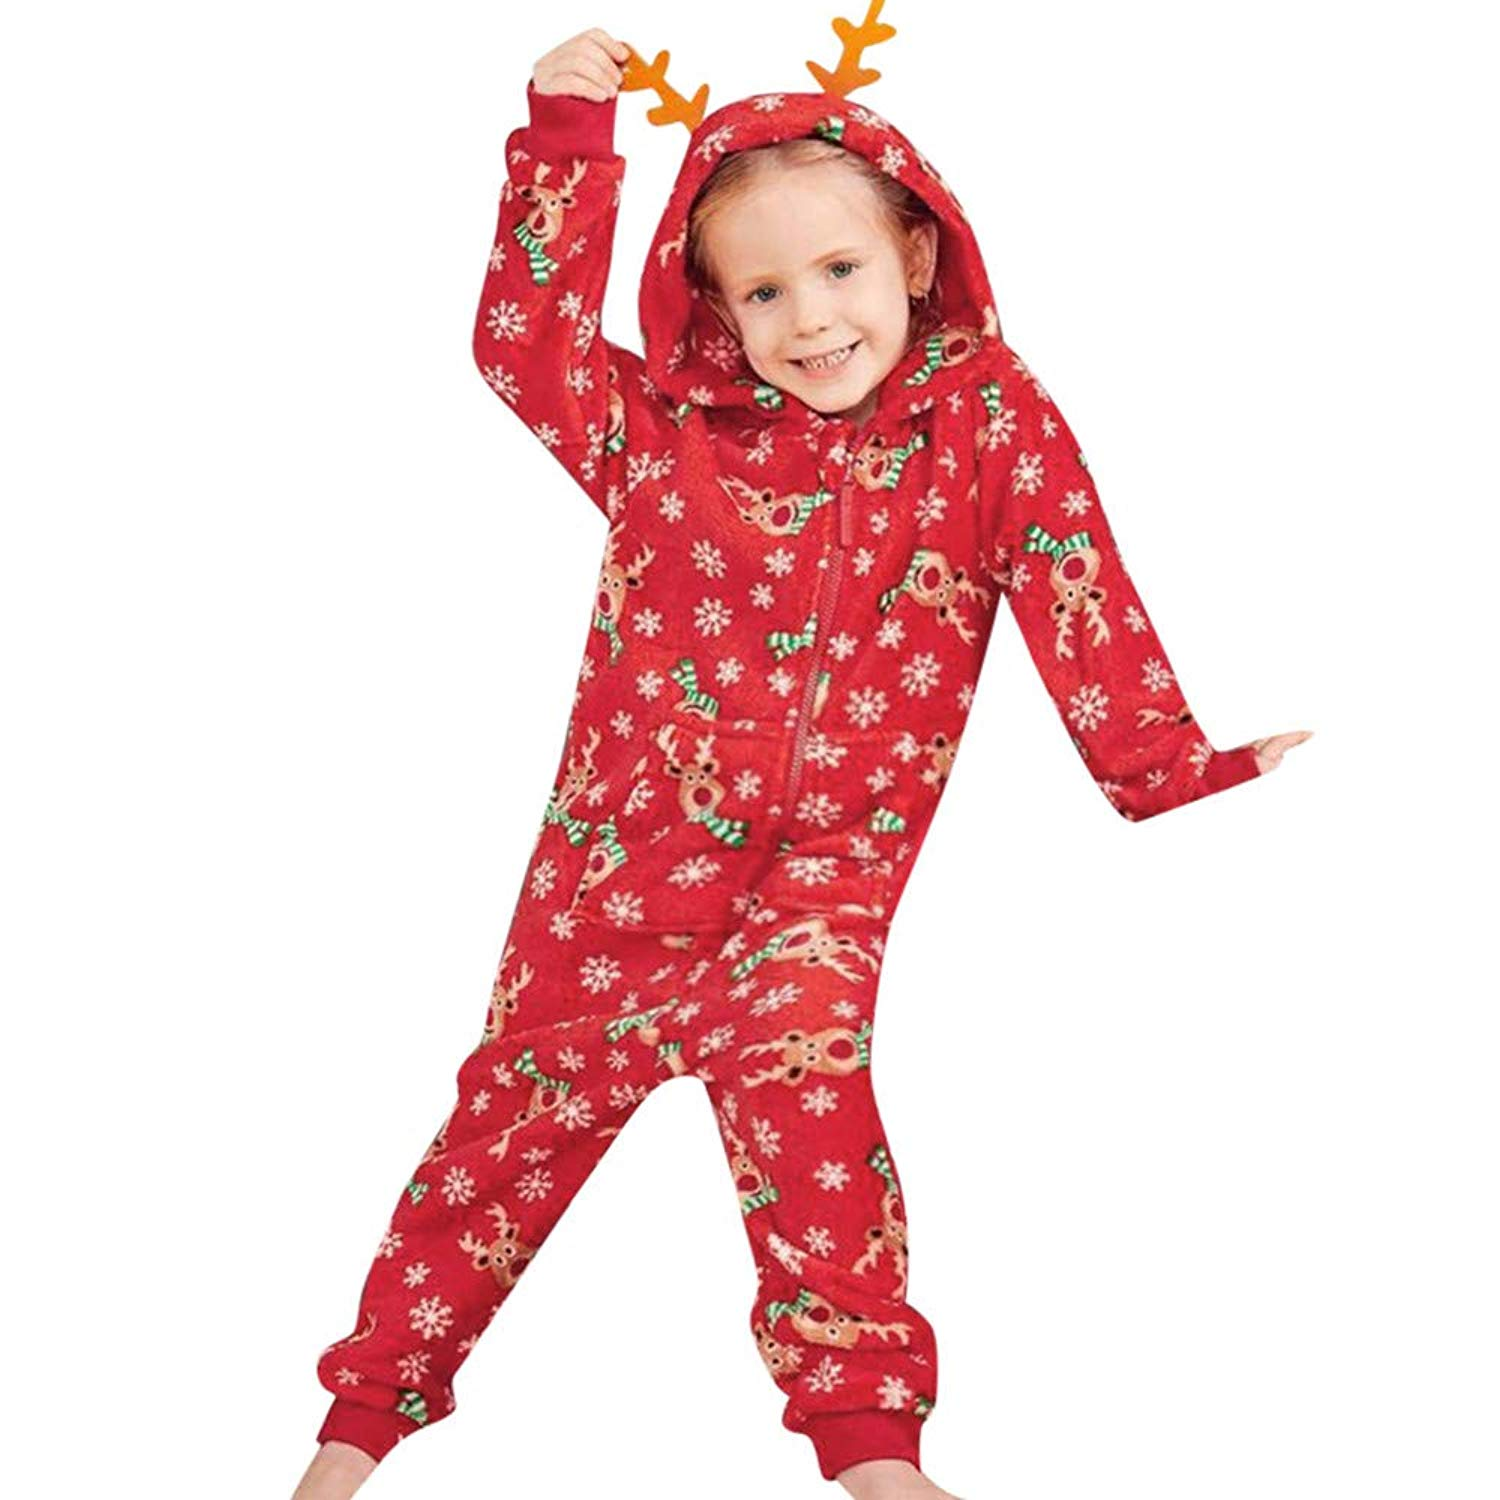 Outtop(TM) Matching Family Pajama Set,Papa Mama Kids Baby Christmas Romper Jumpsuits Family Matching Pajamas